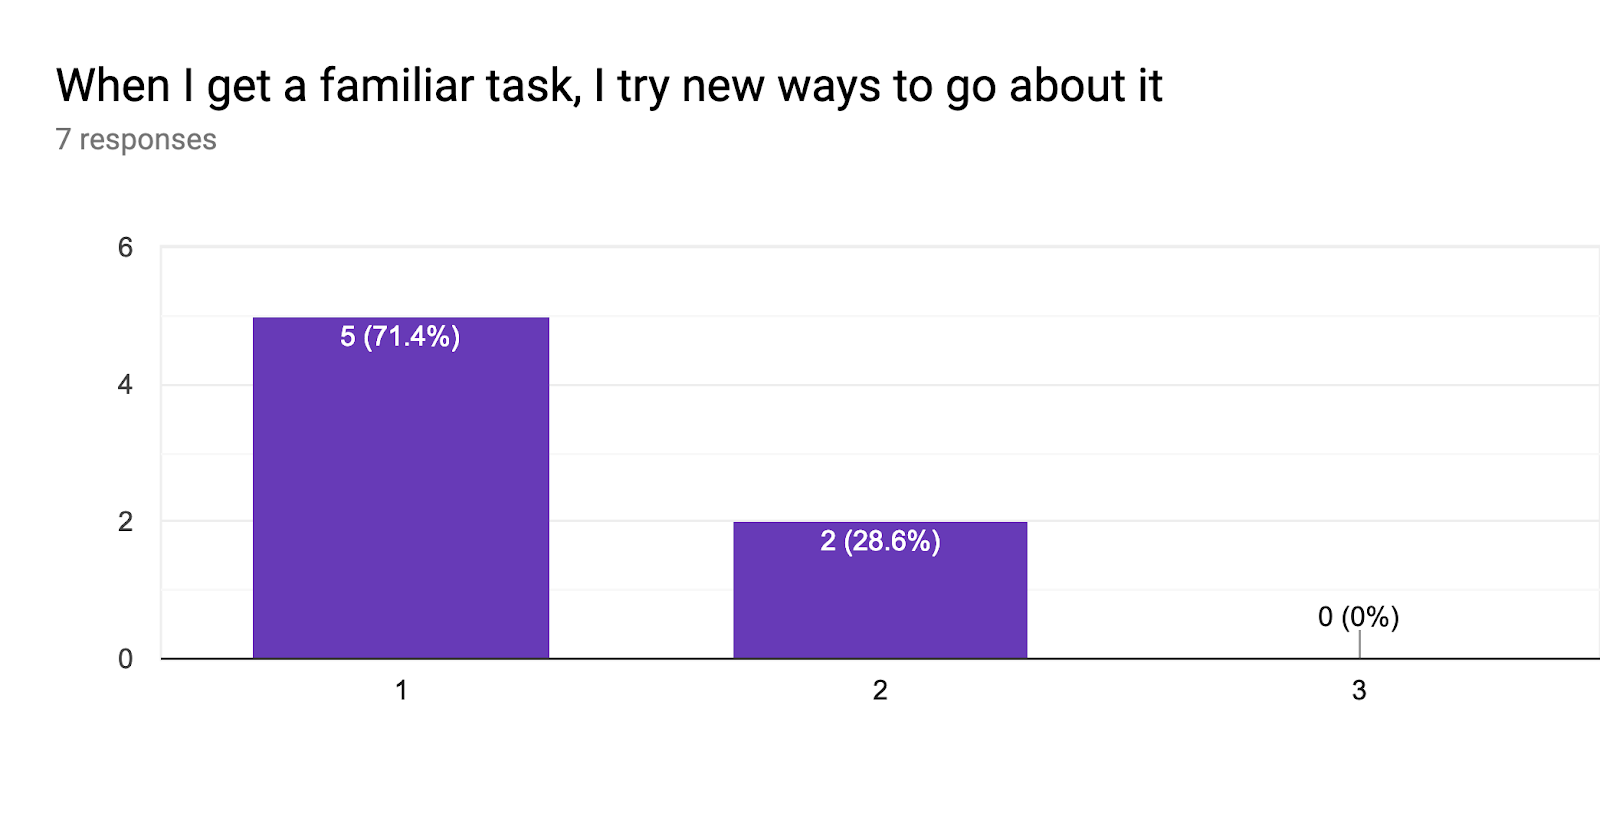 Forms response chart. Question title: When I get a familiar task, I try new ways to go about it. Number of responses: 7 responses.